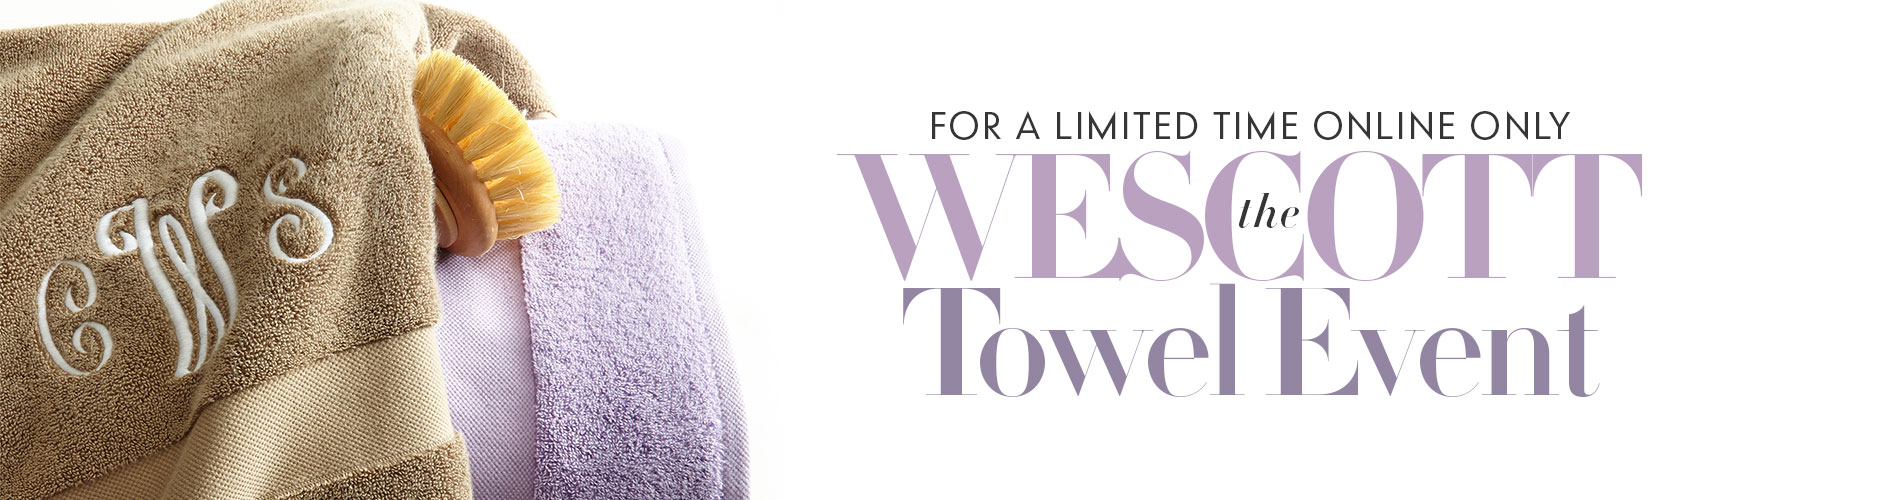 The Wescott Towel Event